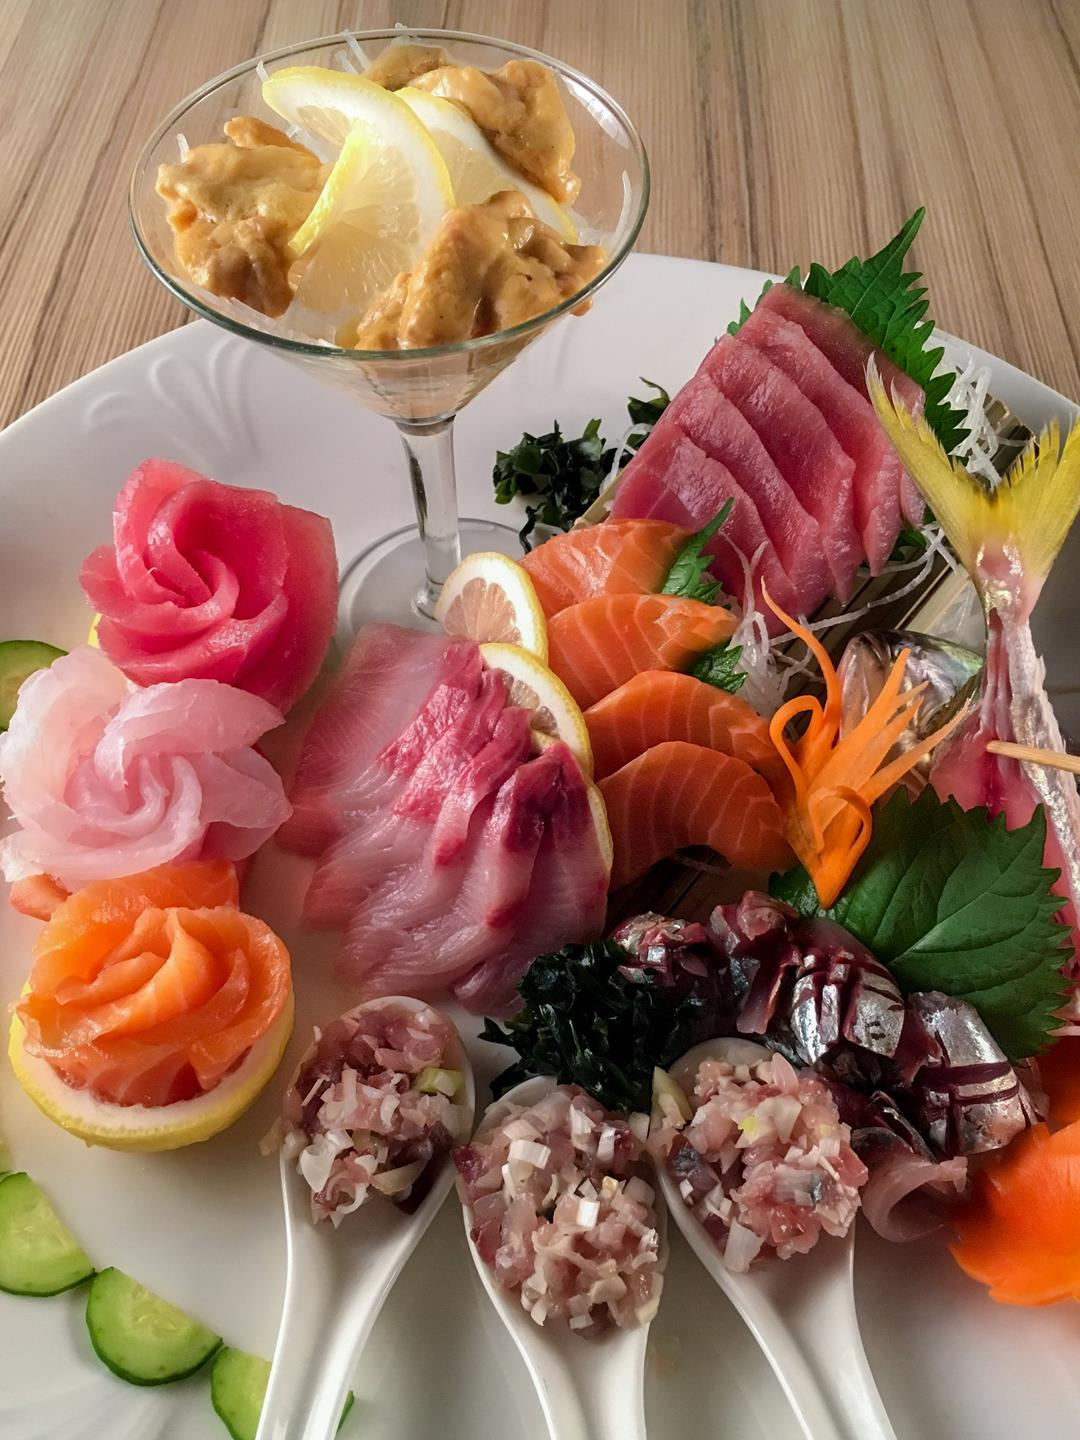 Kitsho's sashimi platter is the best choice for diners who love fresh seafood. (1)